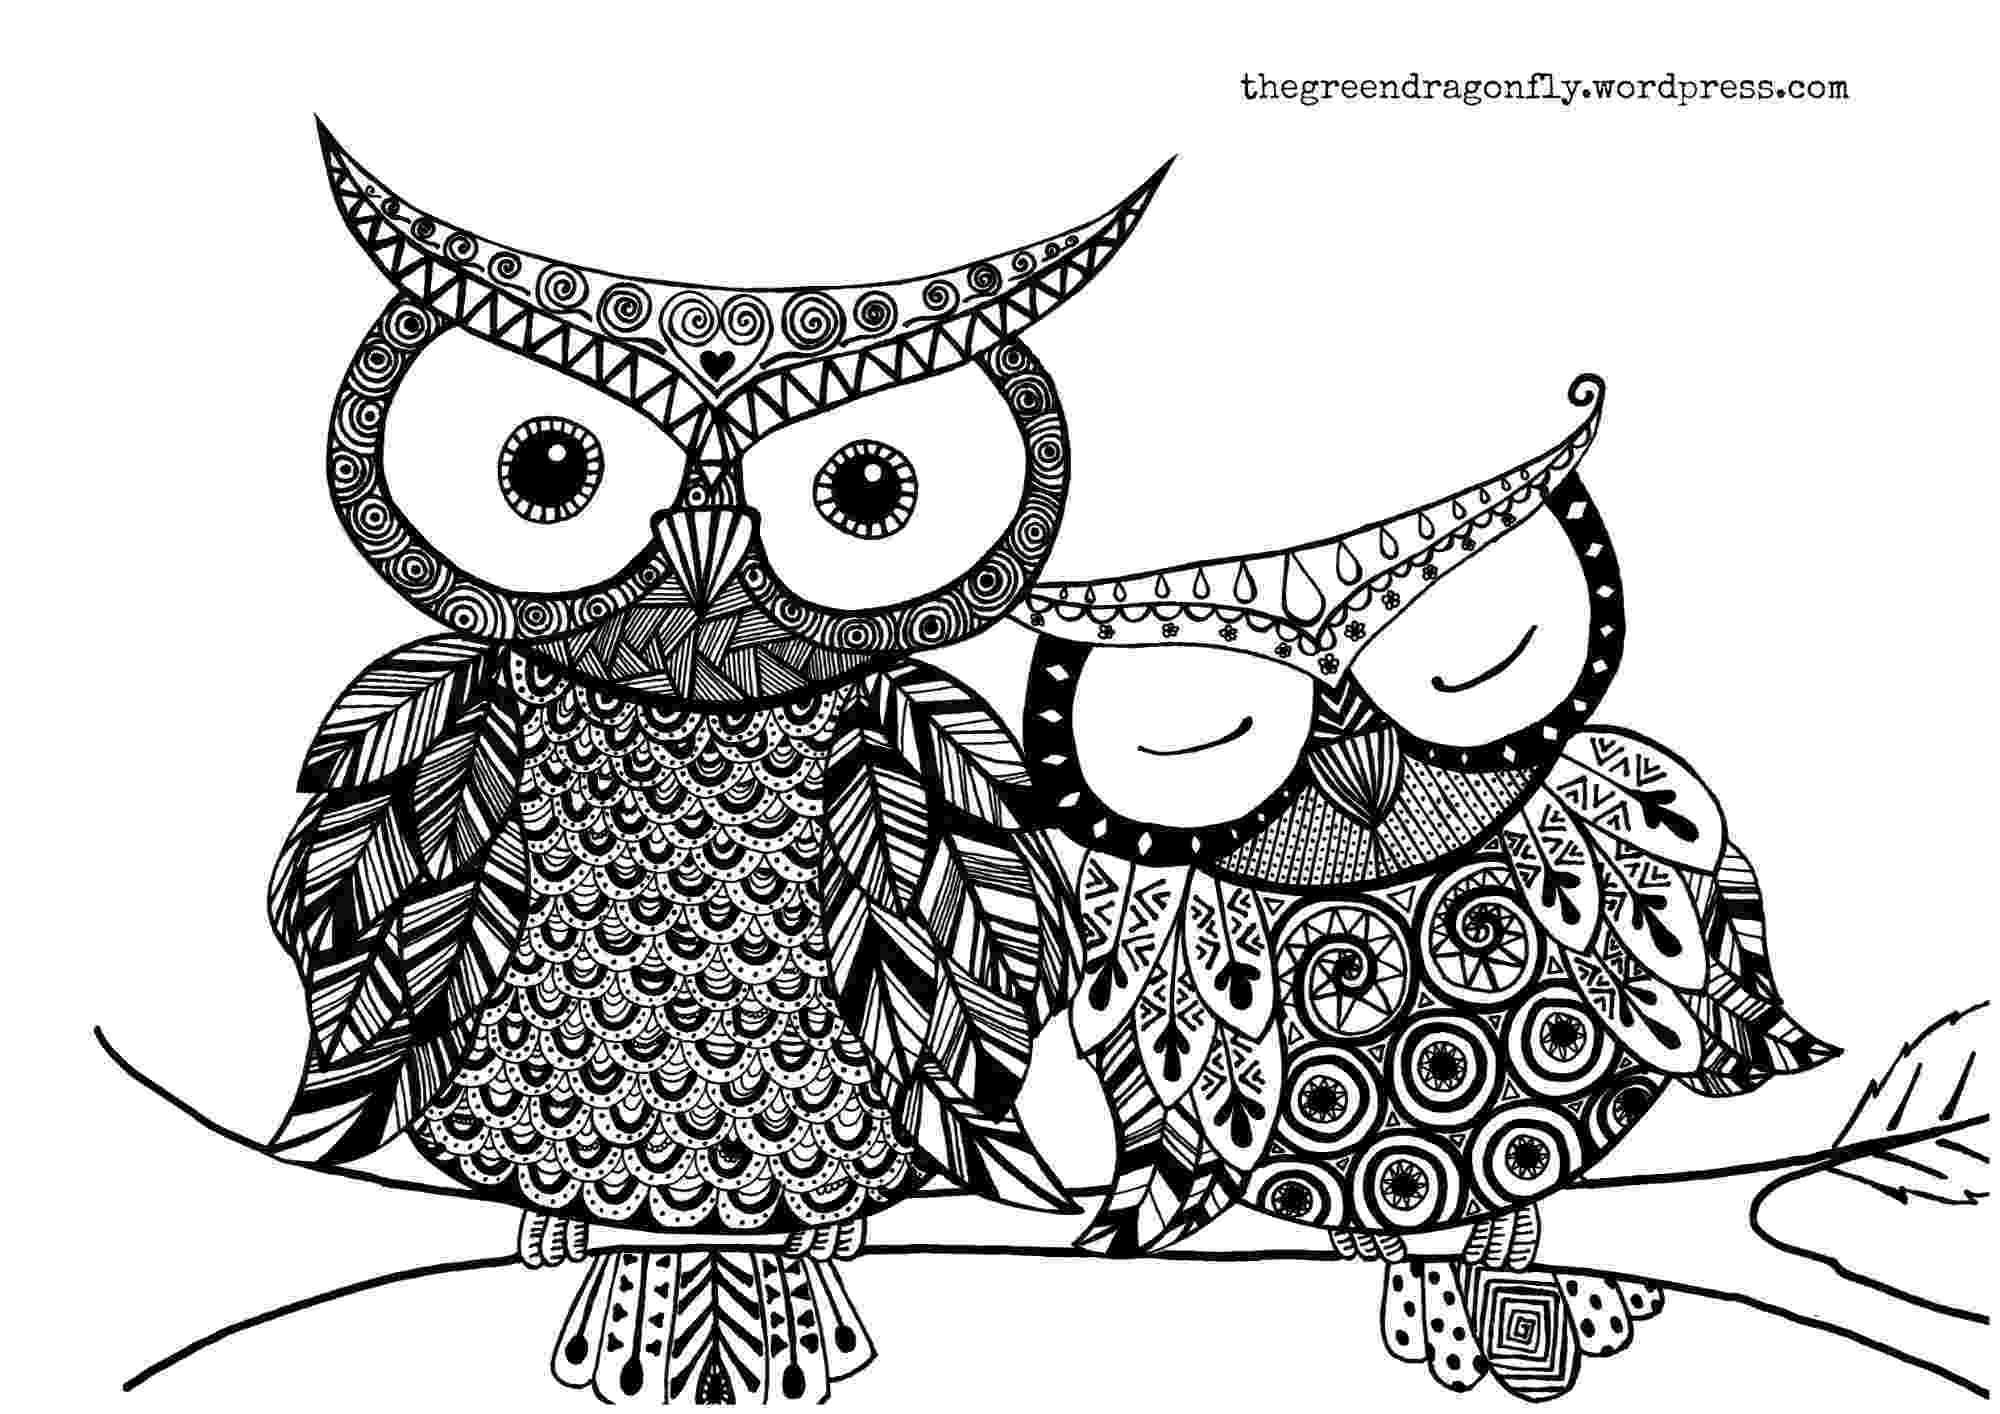 cute coloring pages of owls colouring pages owl themed updated 2011 paper crafts cute of pages coloring owls